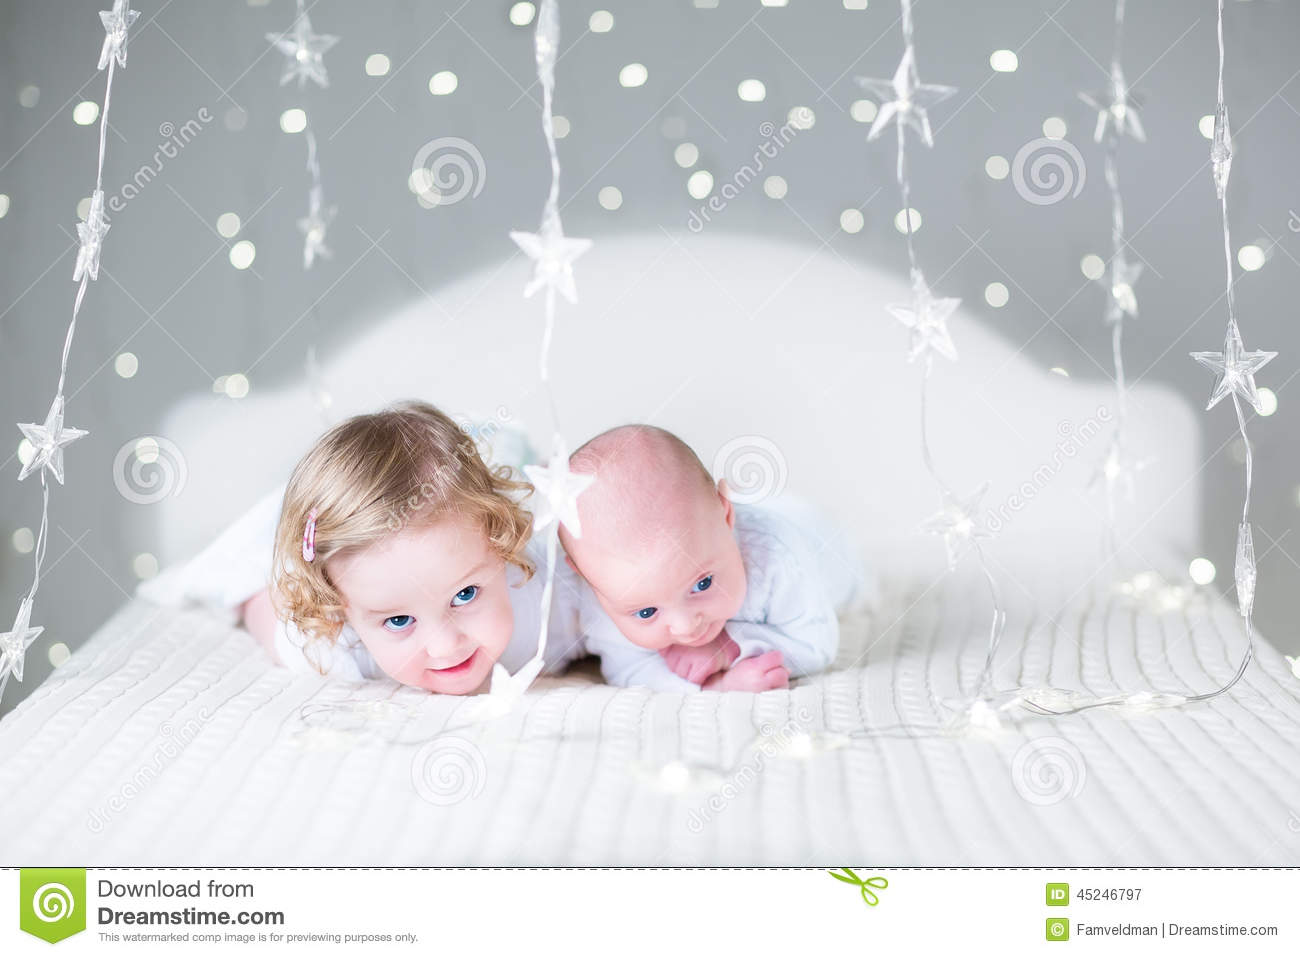 Funny toddler girl and her newborn baby brother relaxing together